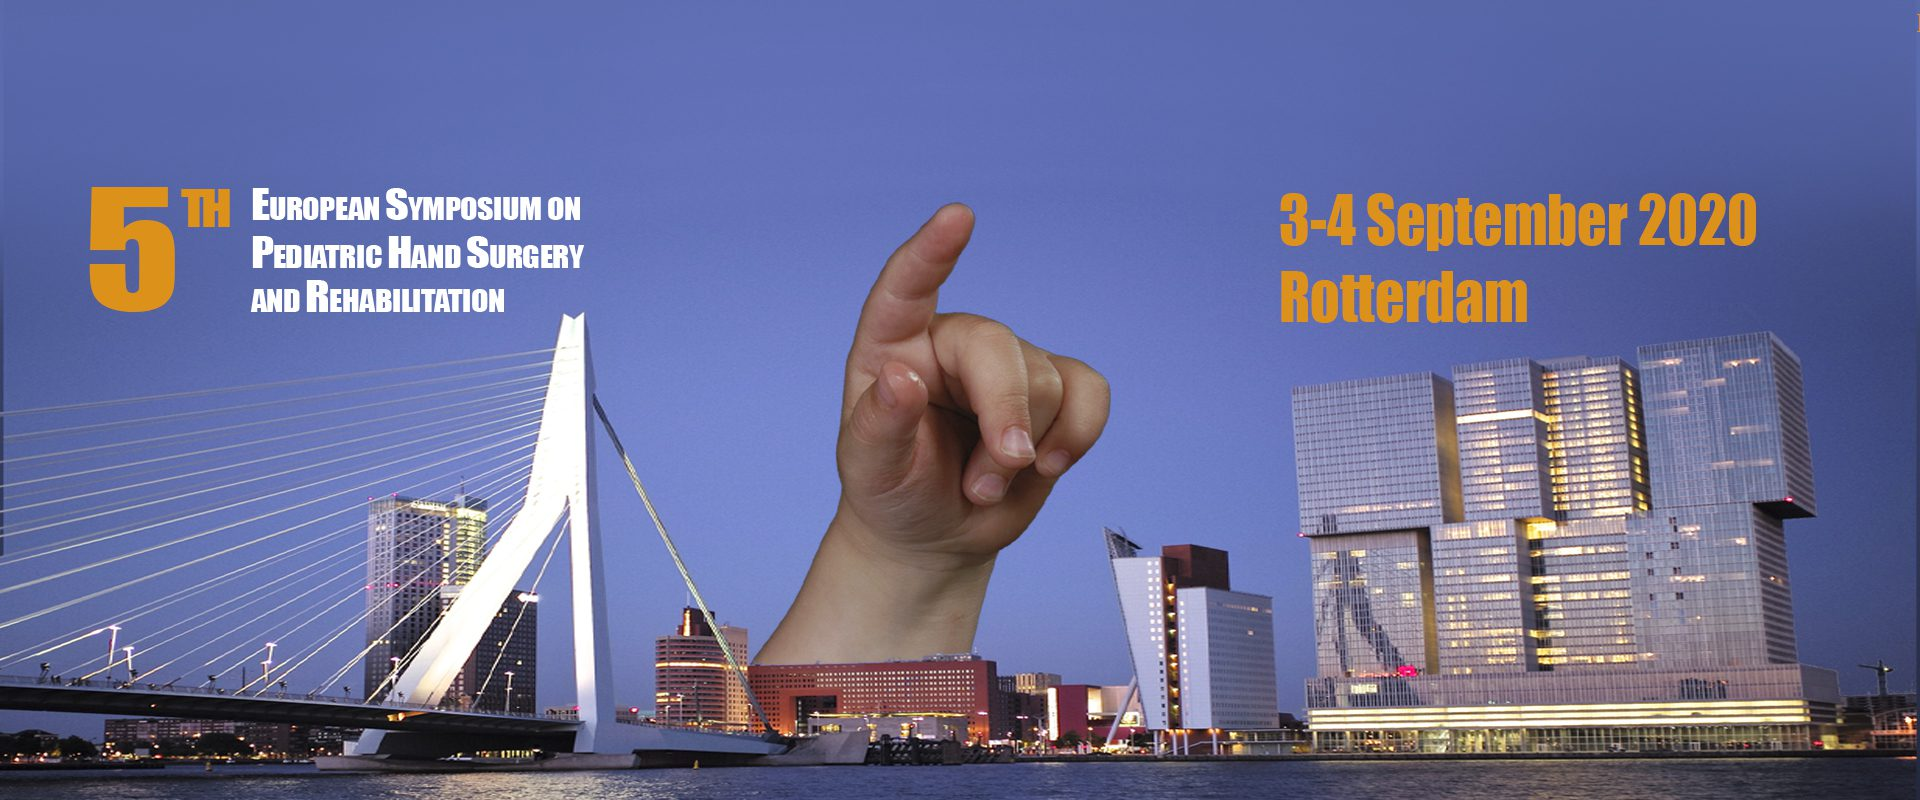 5th European symposium on pediatric hand surgery and rehabilitation